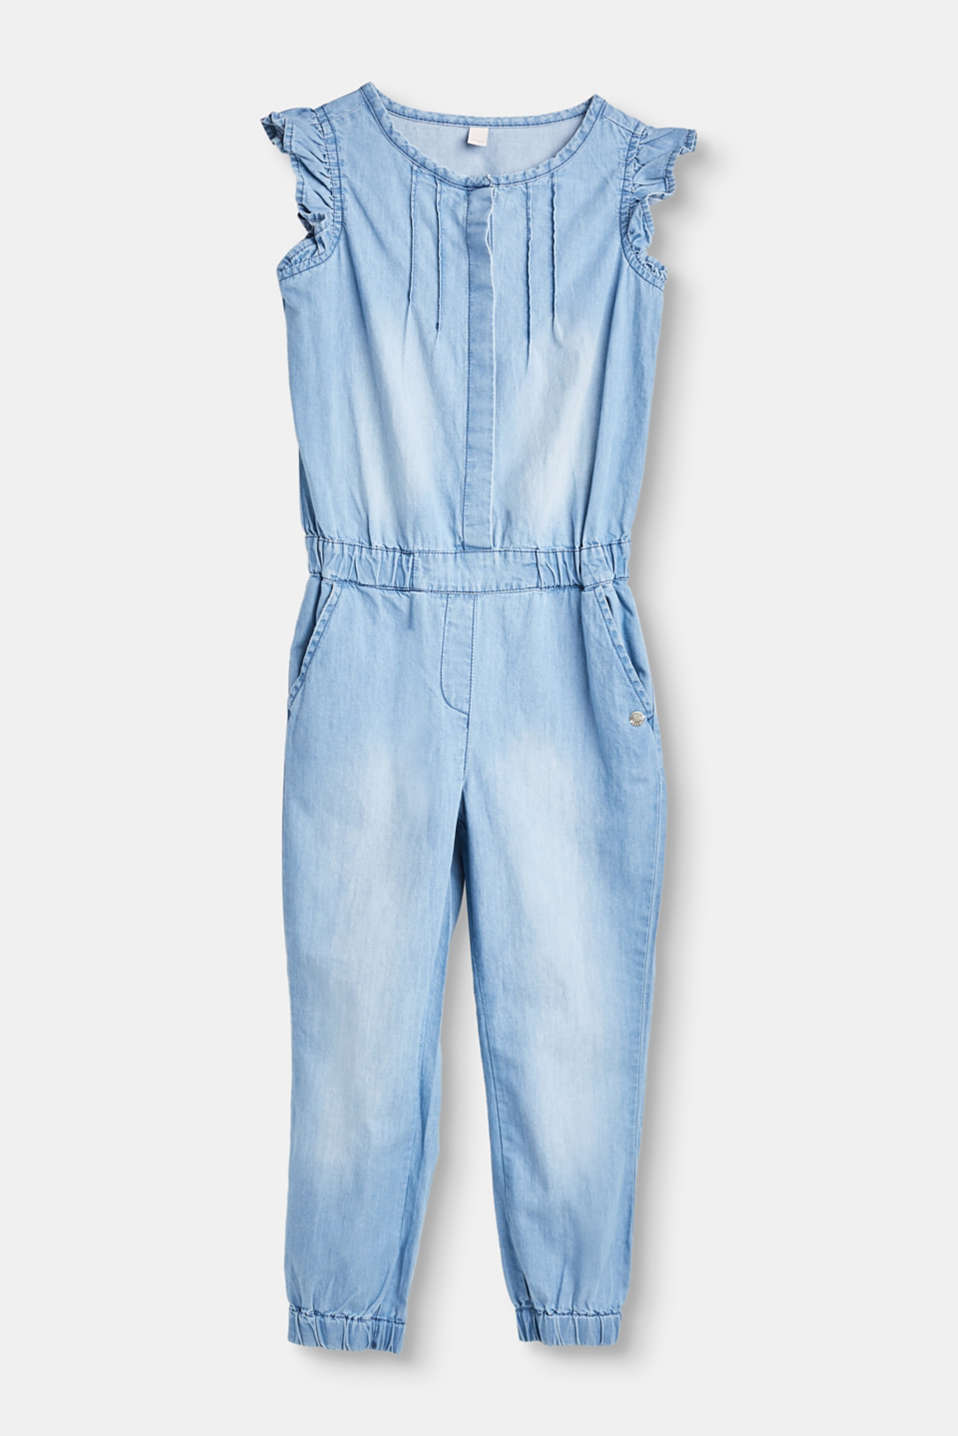 Esprit - Lightweight cotton denim jumpsuit